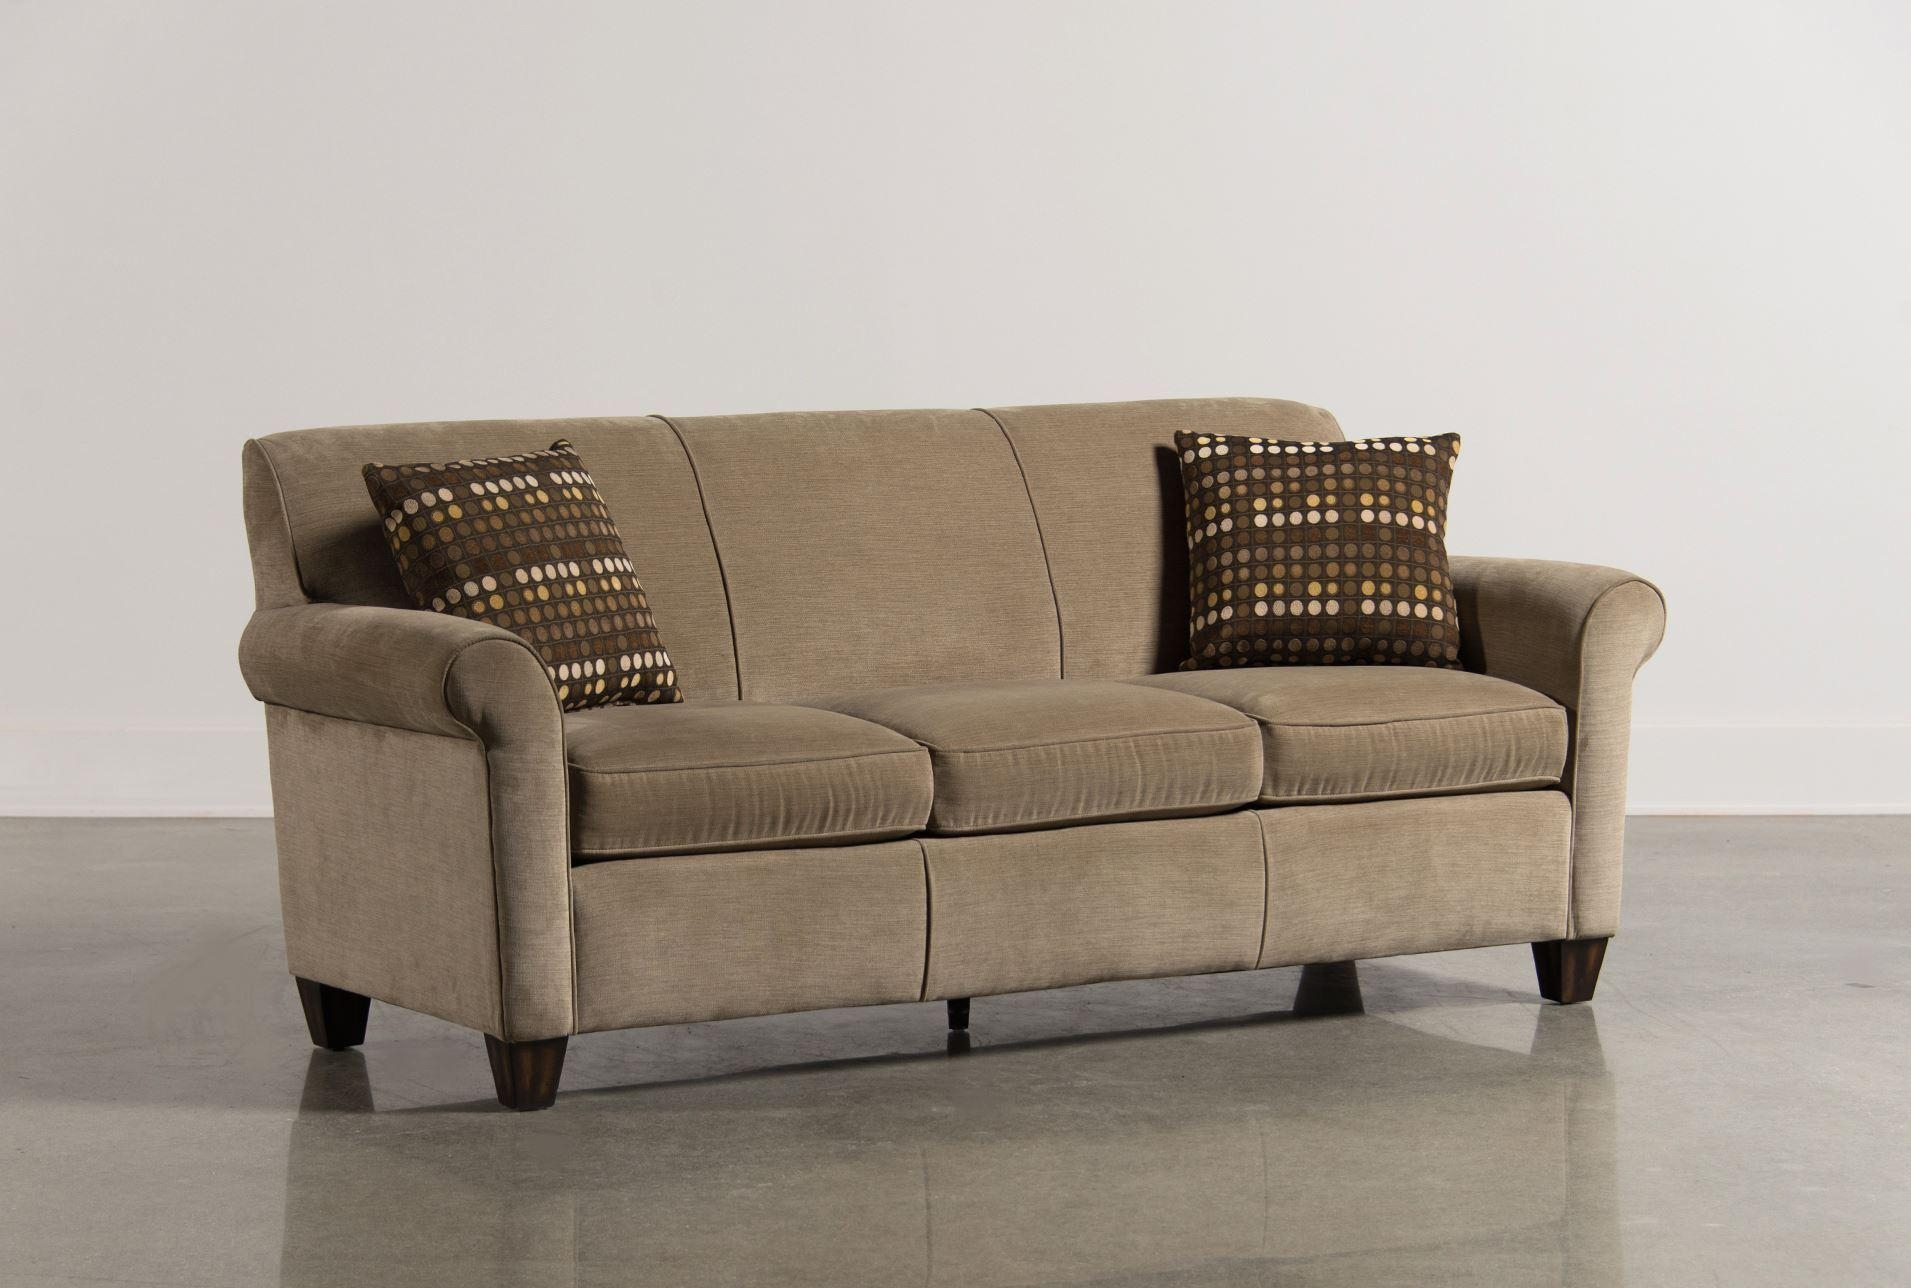 clayton marcus sleeper sofa reviews microsuede cover 20 best sofas ideas